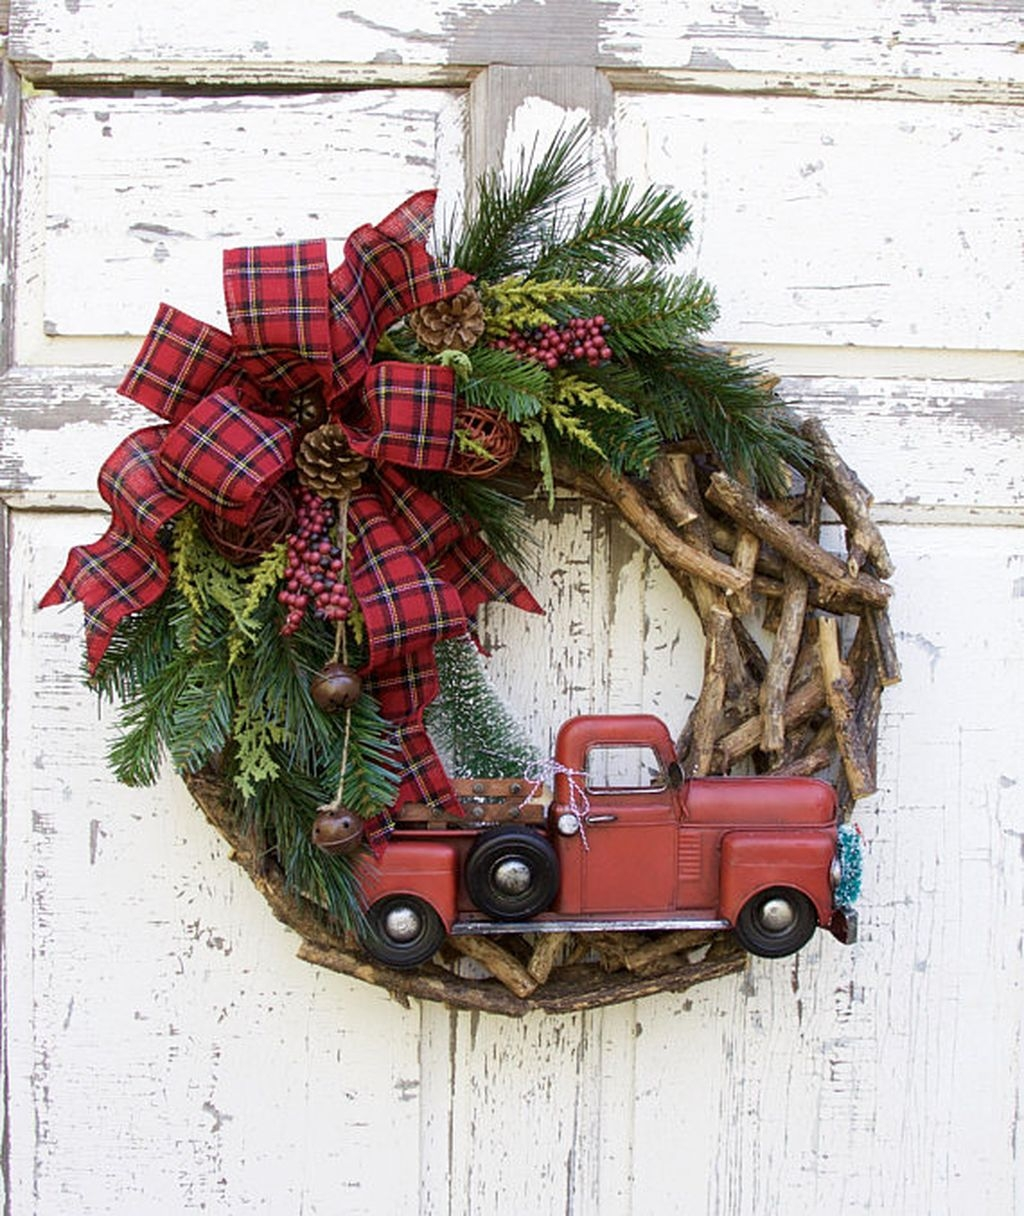 Elegant Rustic Christmas Wreaths Decoration Ideas To Celebrate Your Holiday 33